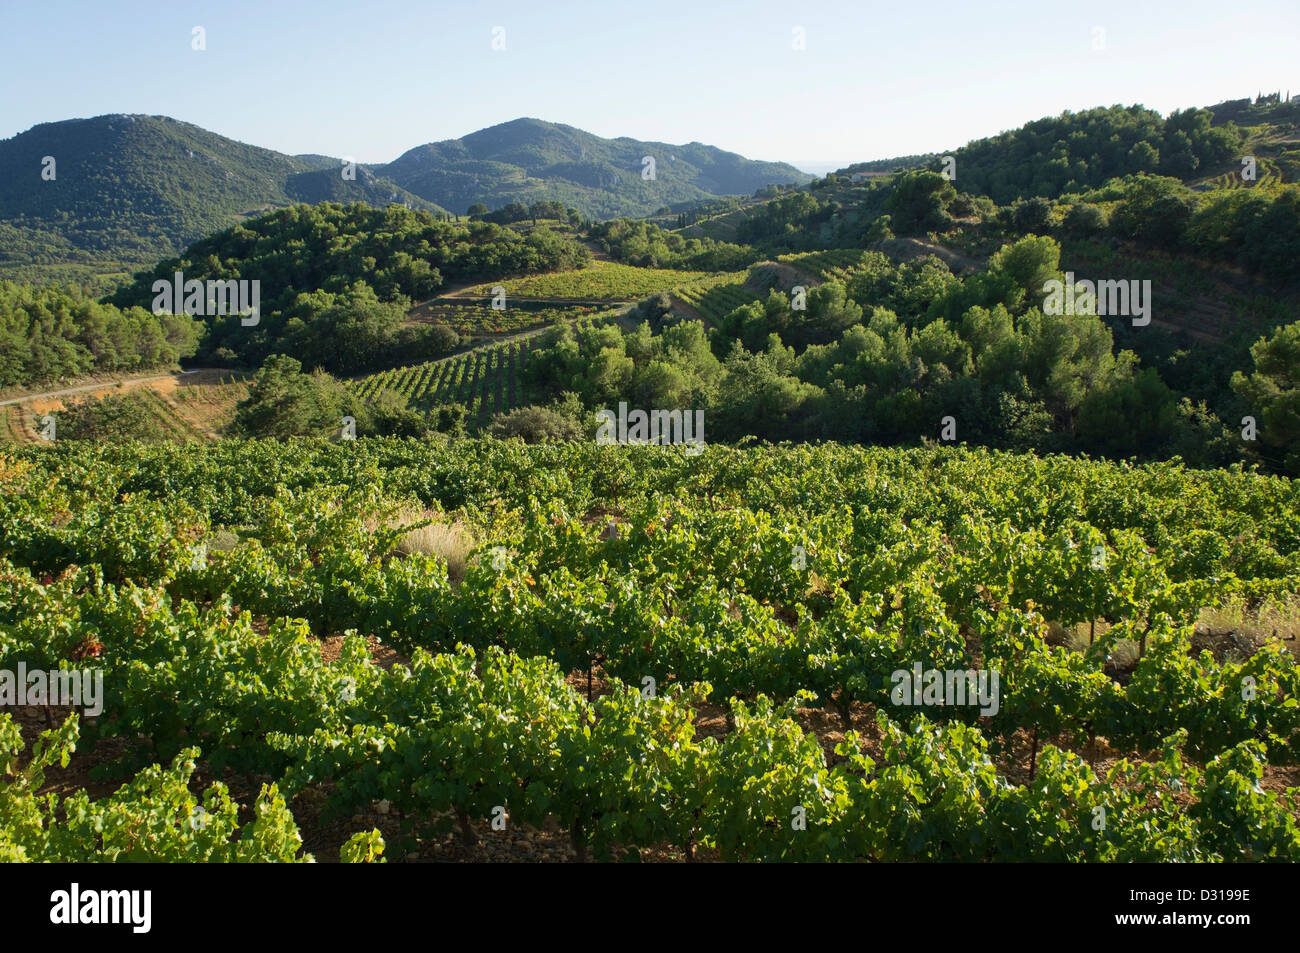 Vineyards during harvest in autumn, Beaumes de Venise, Rhone Valley, France - Stock Image